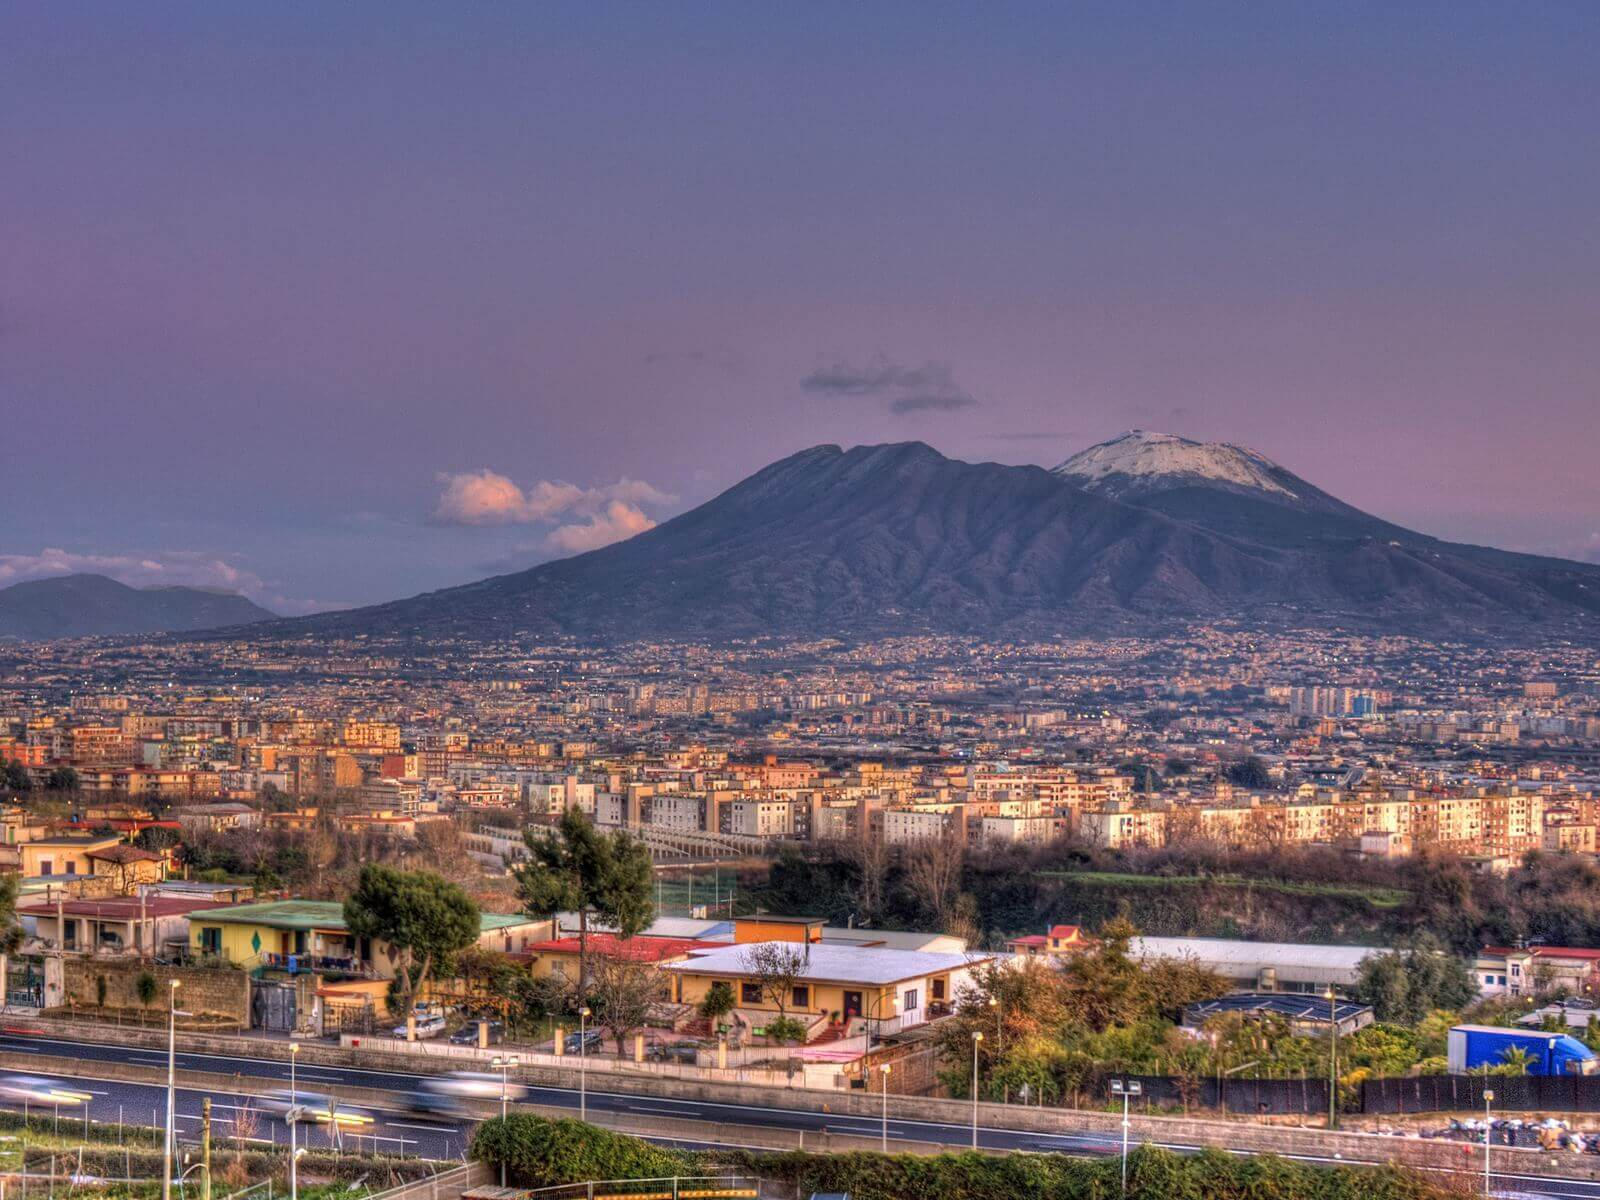 Mount_Vesuvius_in_Naples_Italy_Napoli1